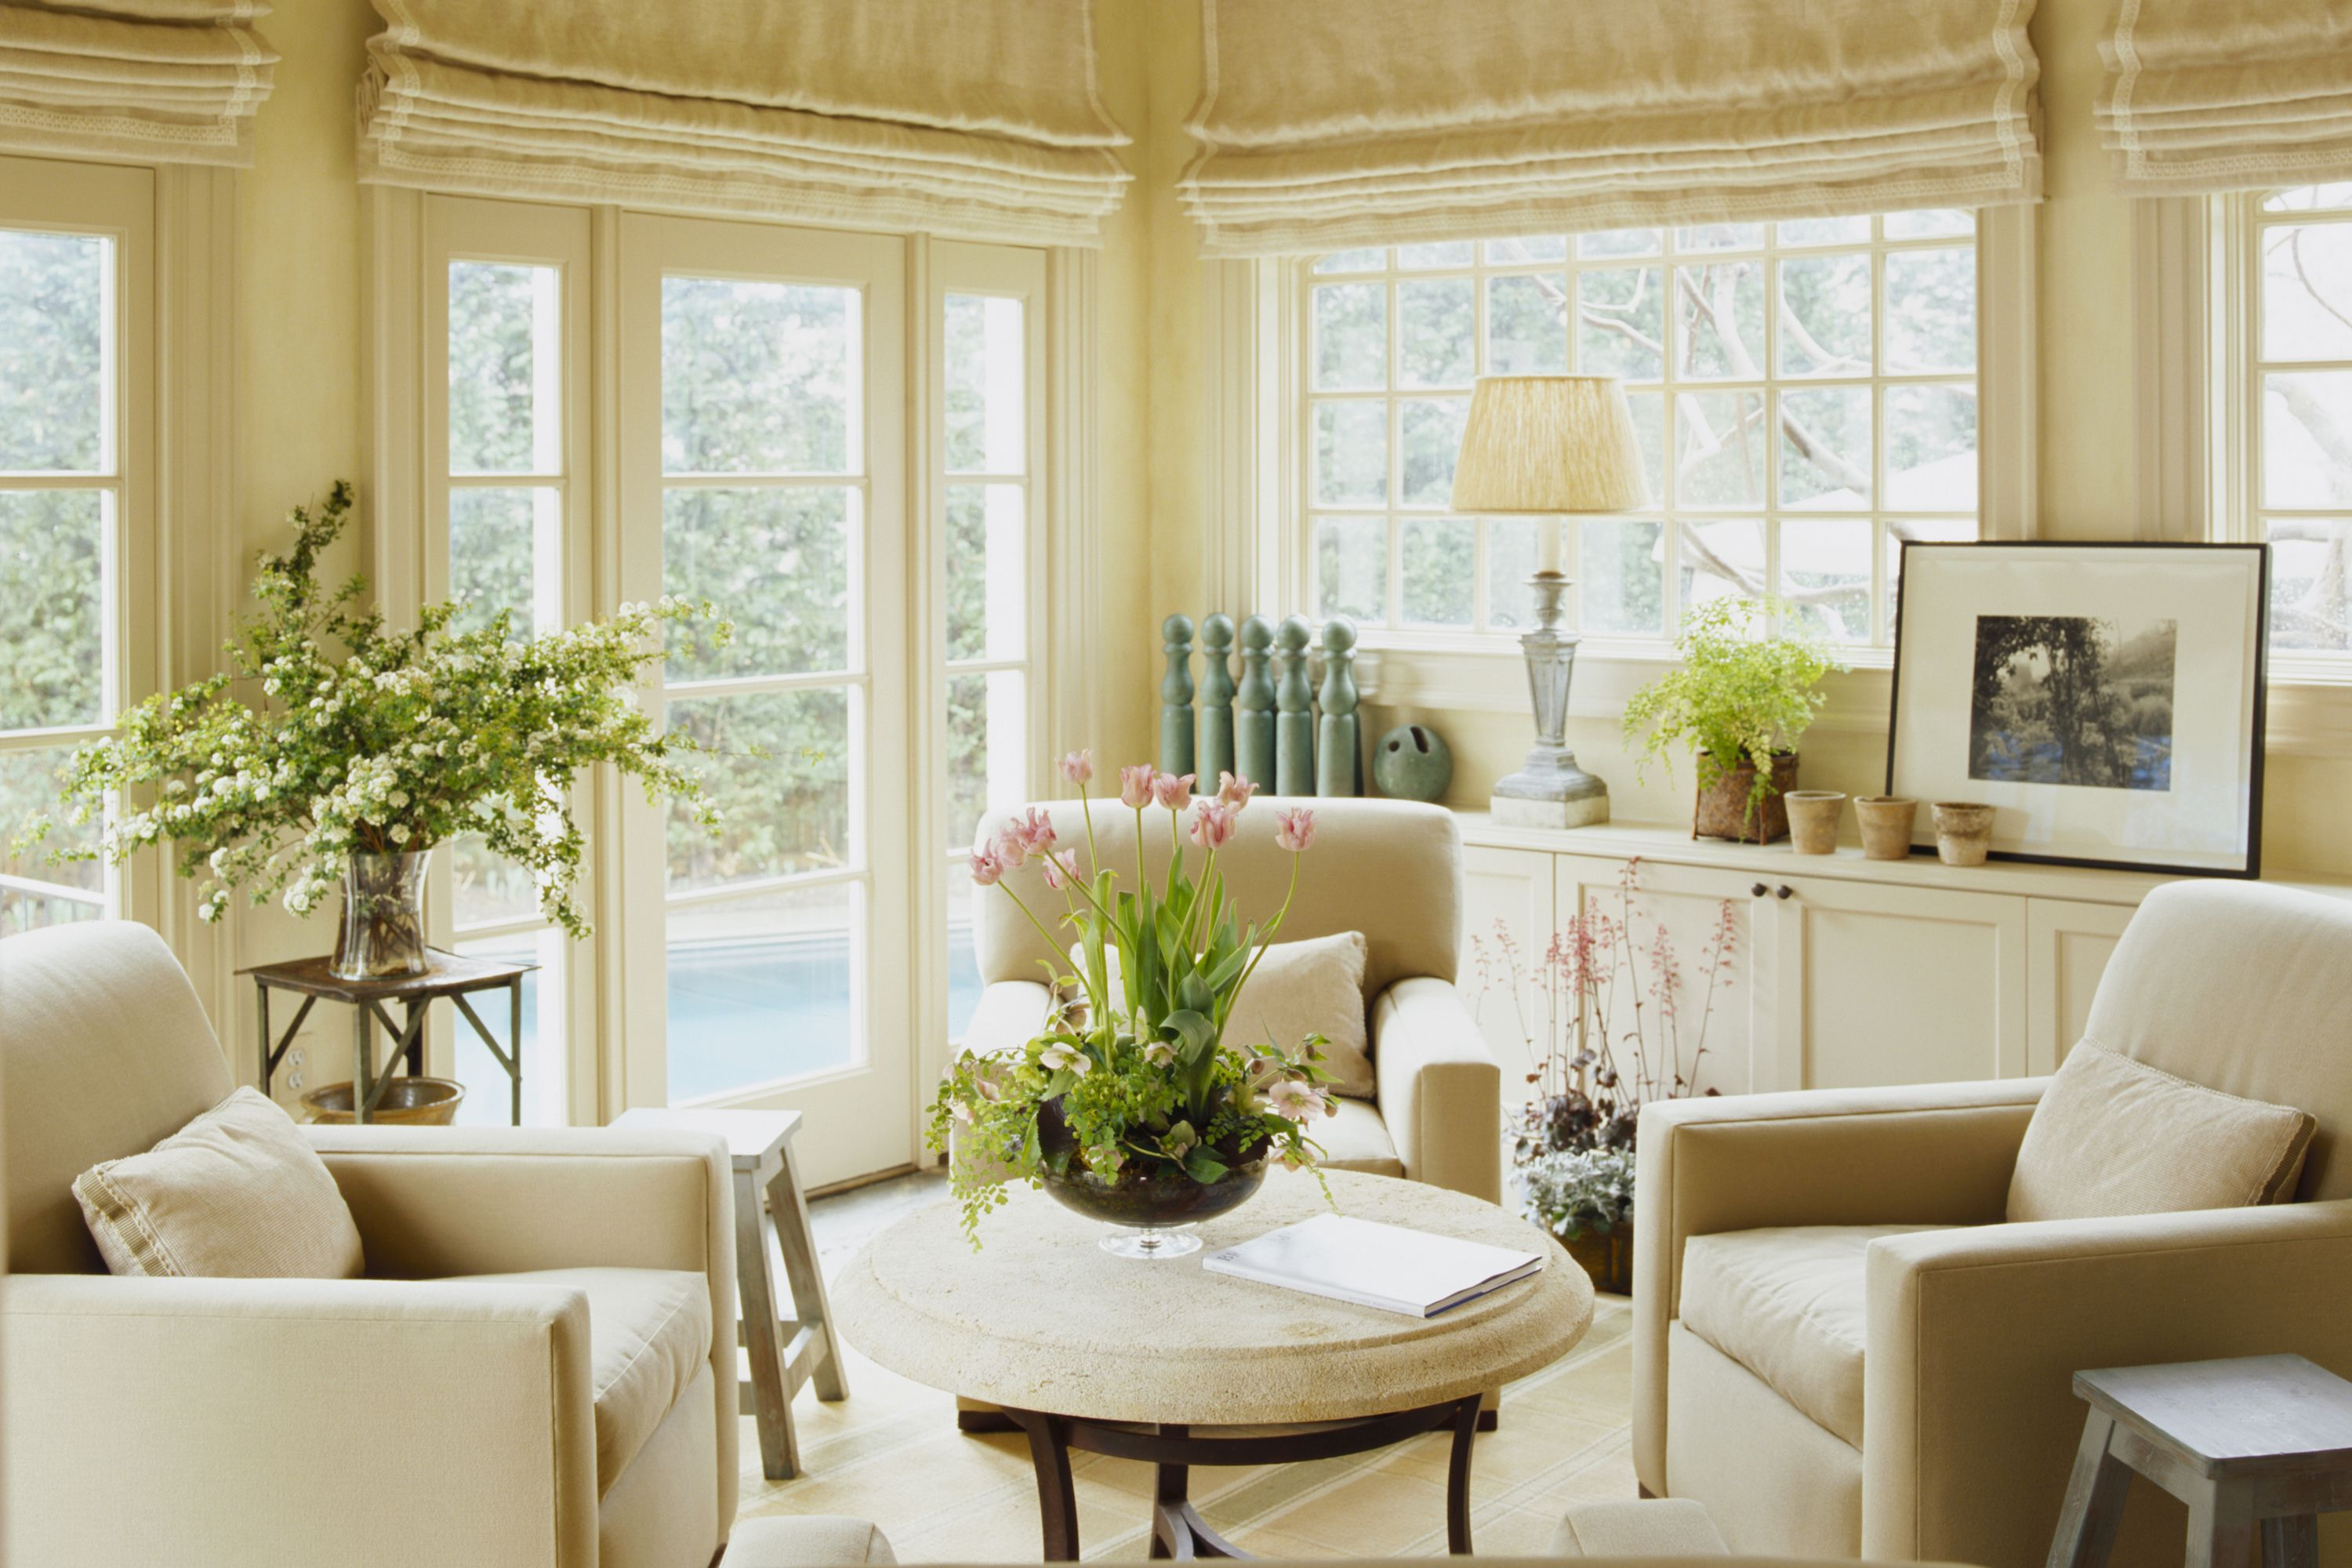 for a home design decorating sunroom sponge family wisconsin in designed ideas decor pin